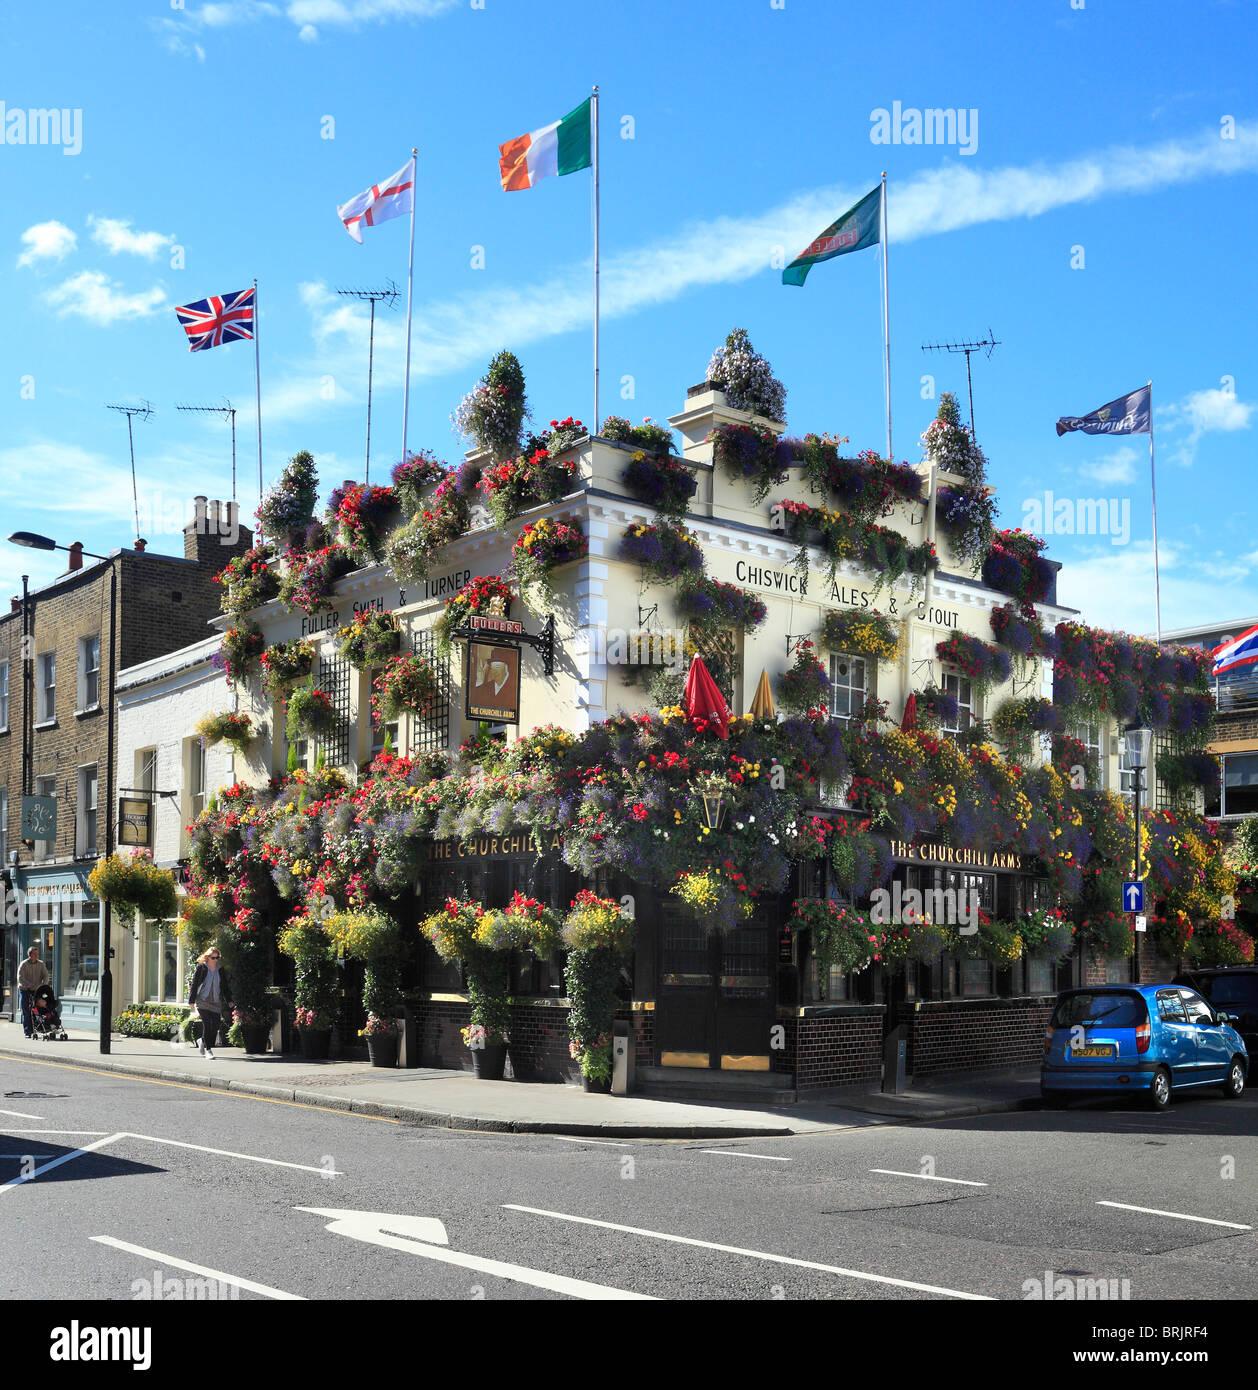 The Churchill Arms Pub in Kensington Church Street London - Stock Image